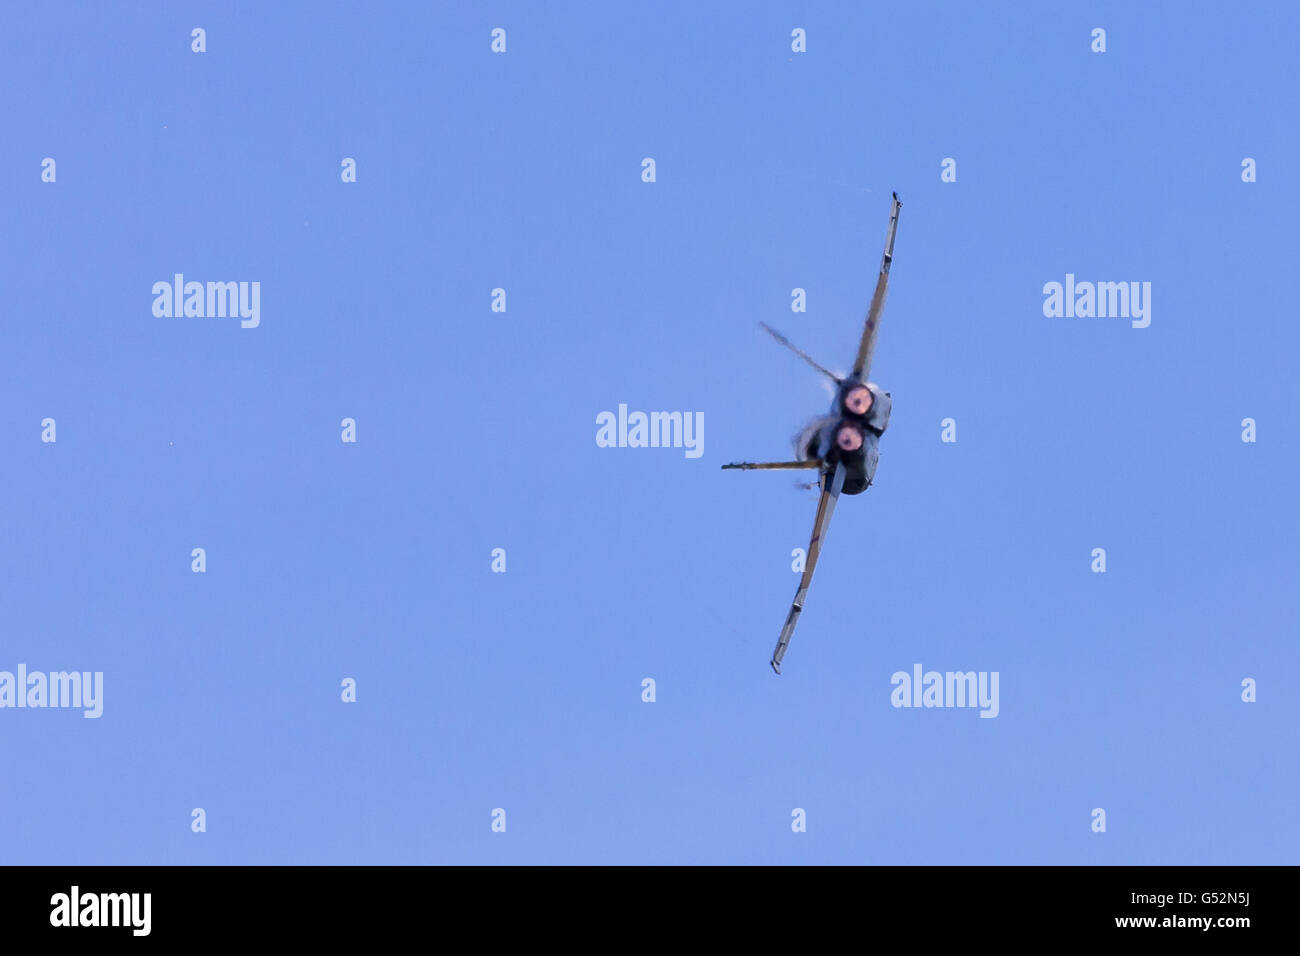 A RCAF CF-18 Hornet performs at the Great Lakes International Airshow in St. Thomas Ontario, Canada. Stock Photo